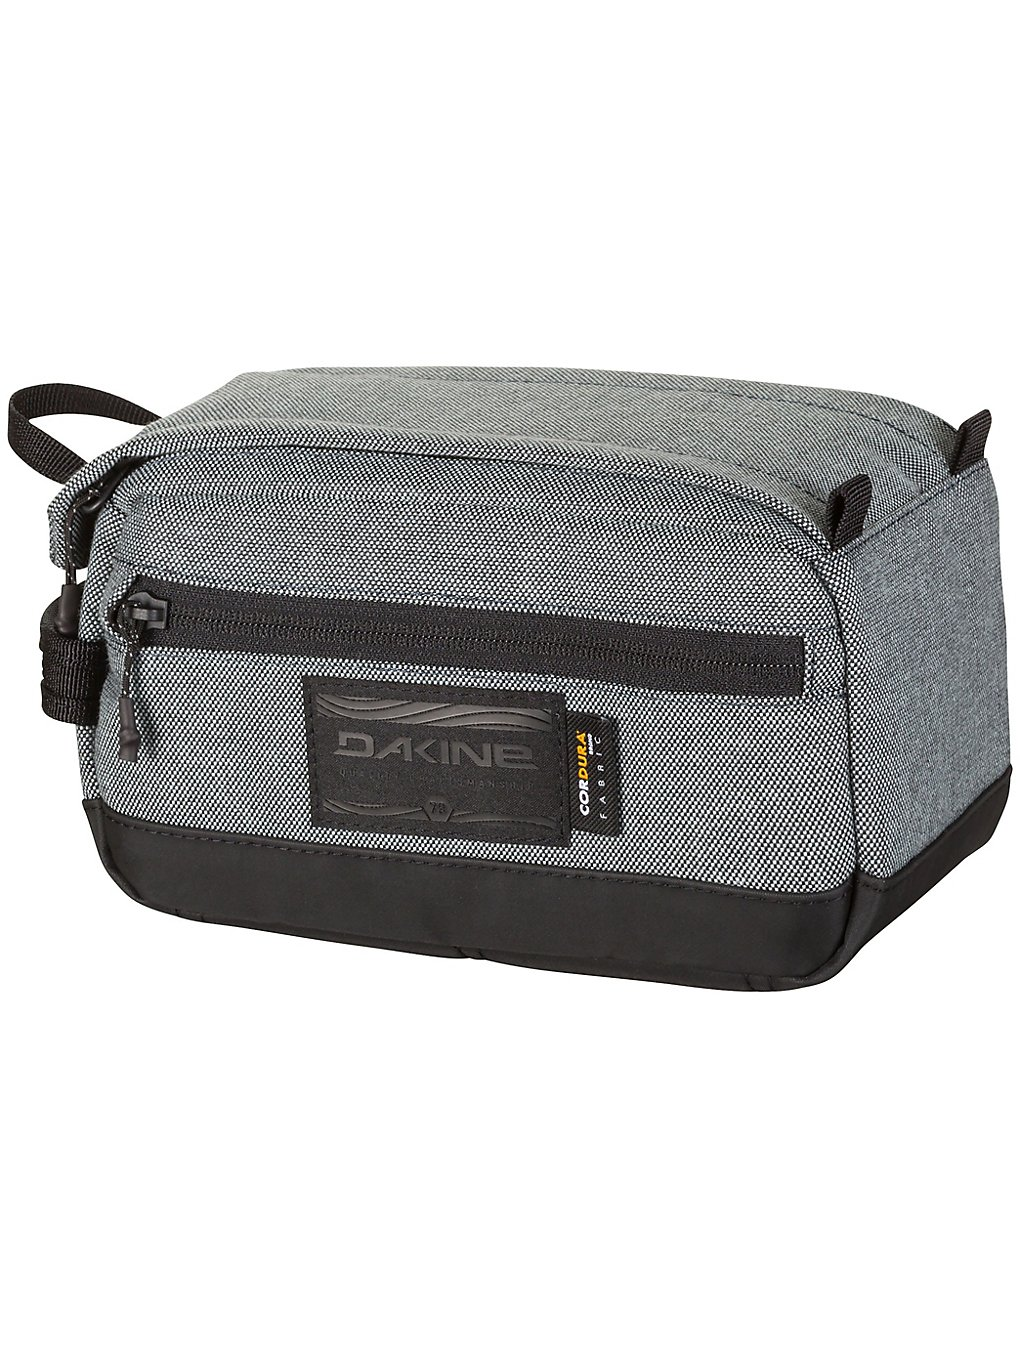 Image of Dakine Groomer M Washbag grigio